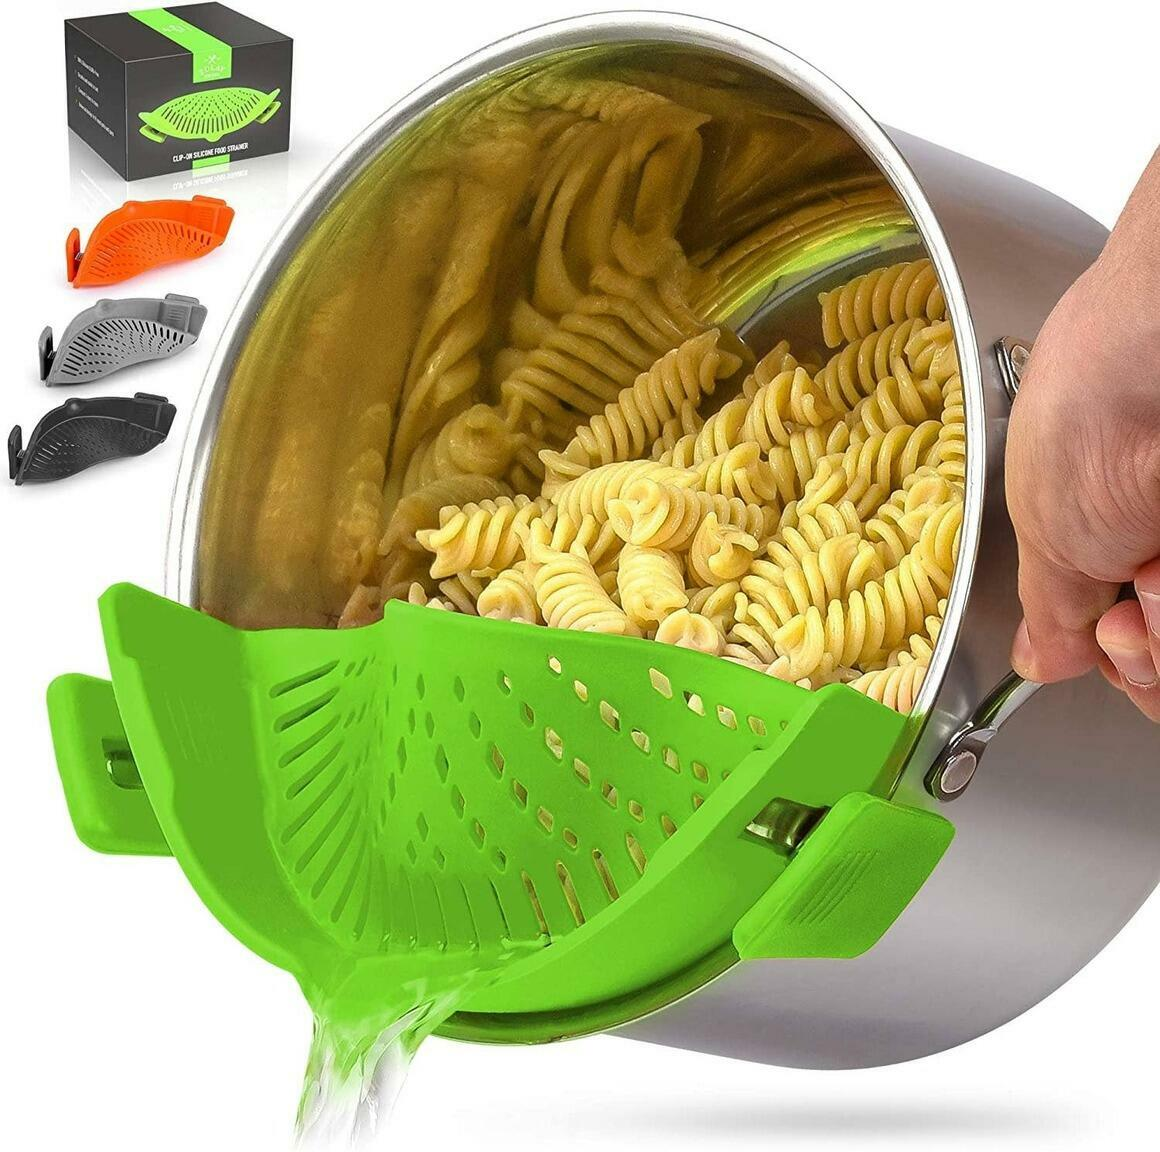 Adjustable Silicone Strainer with Small Mouth | Trada Marketplace